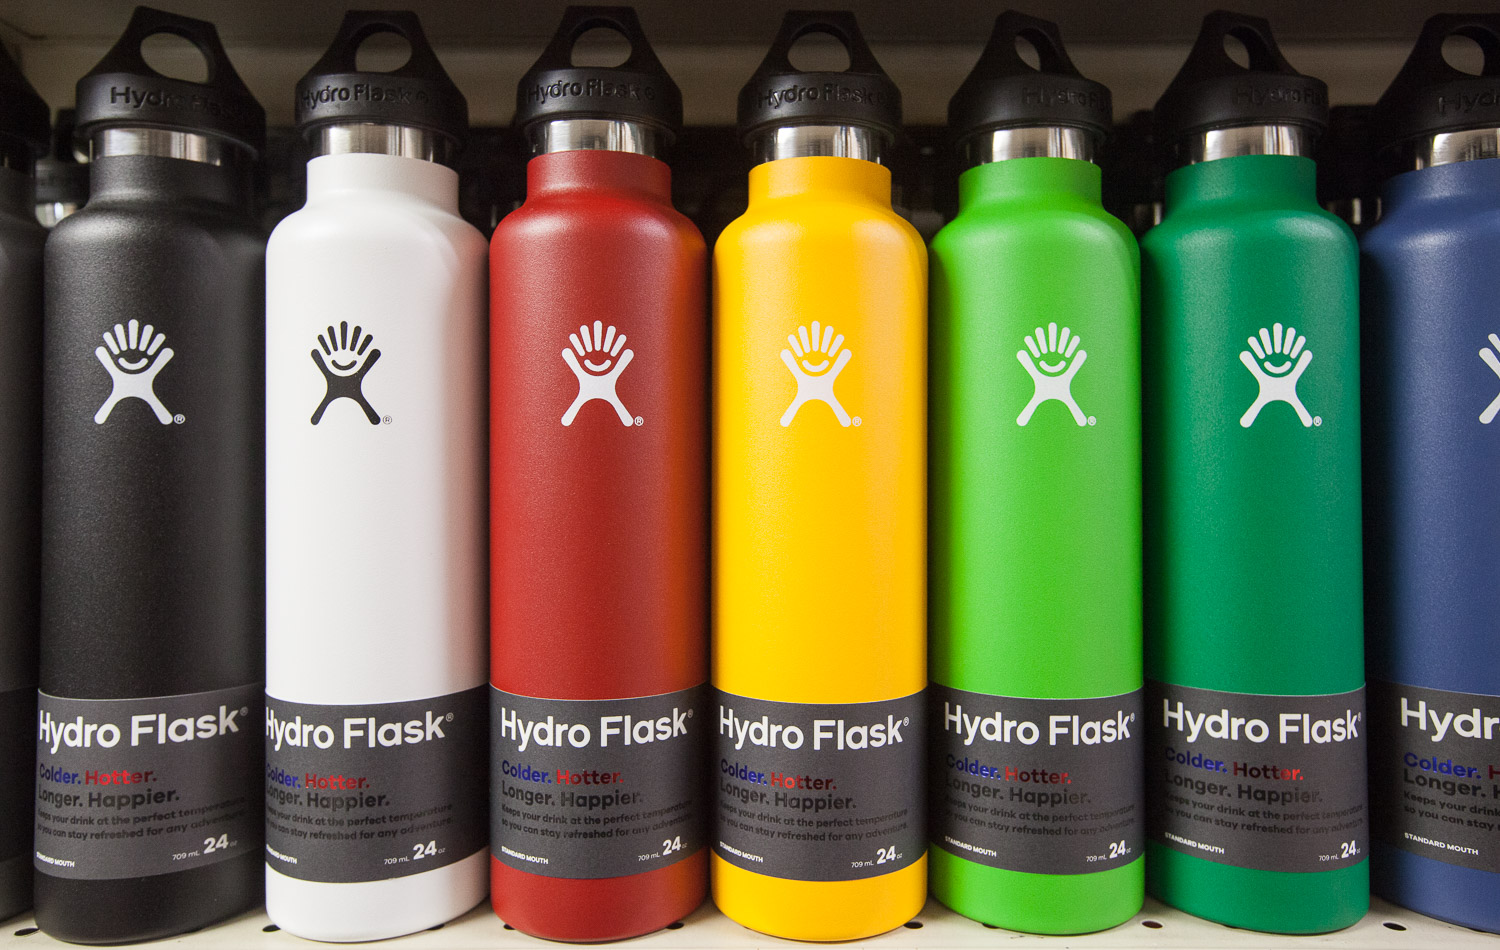 small-hydro-flasks-mana-foods-gifts-household-department.jpg